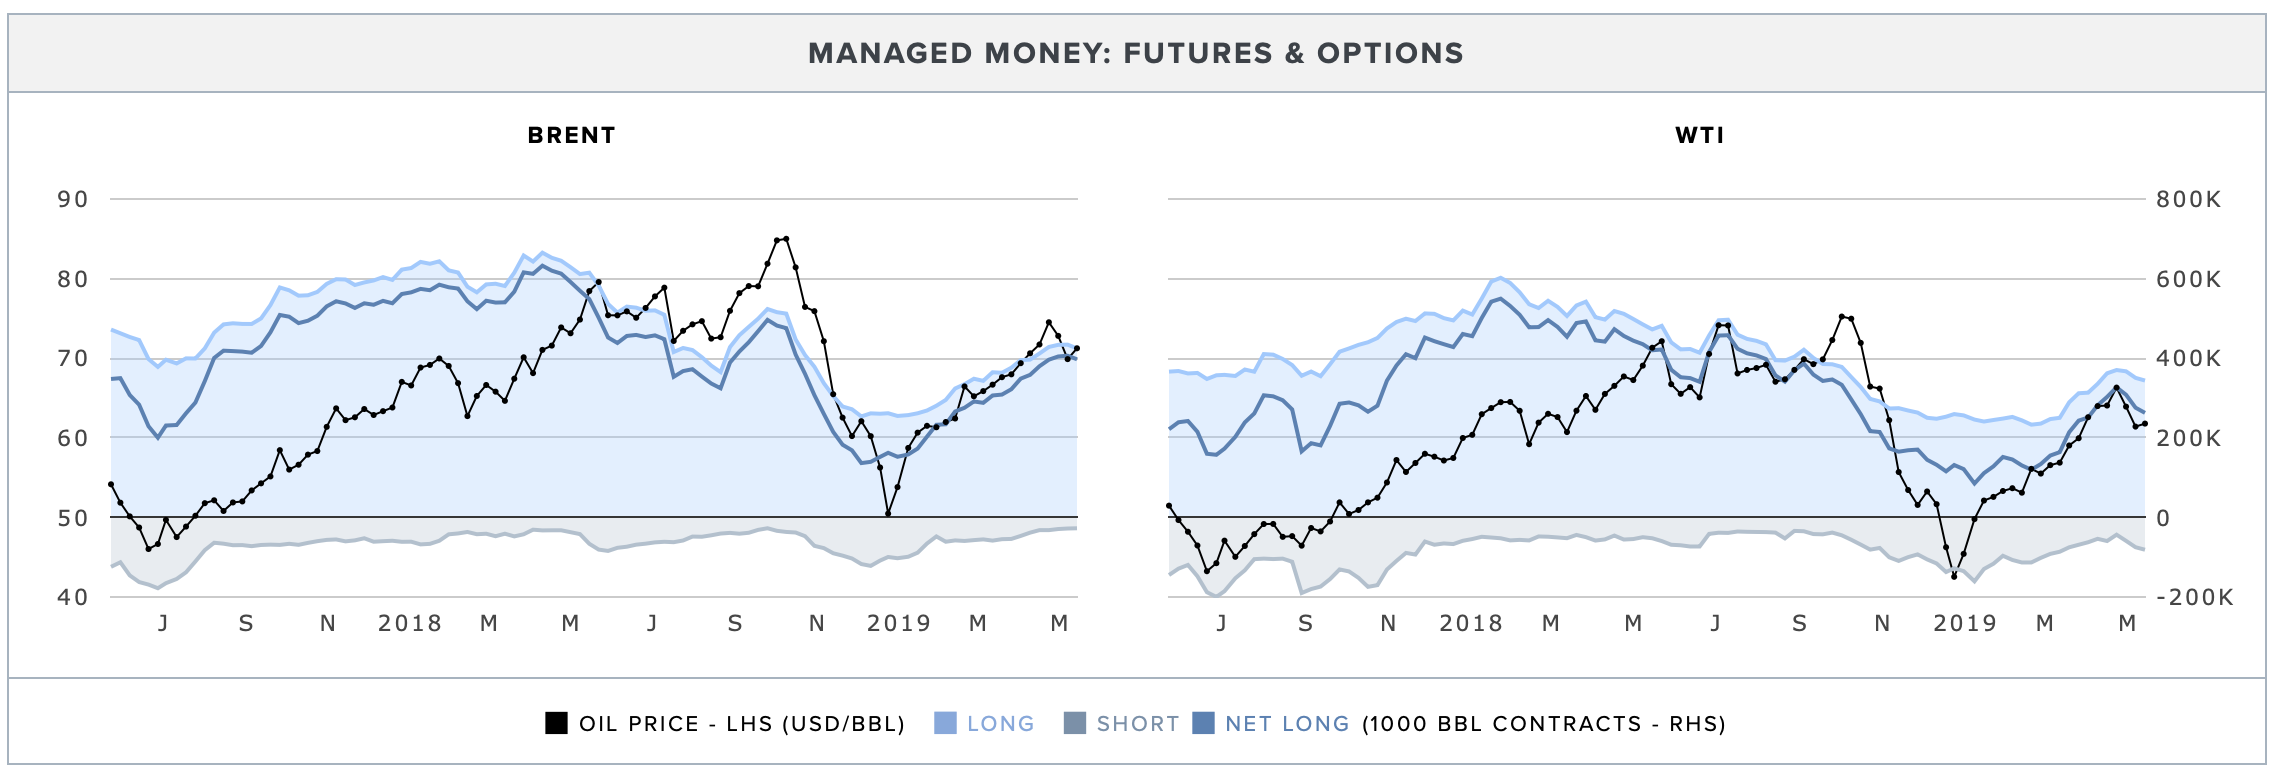 managed-money-futures-options-brent-wti.png